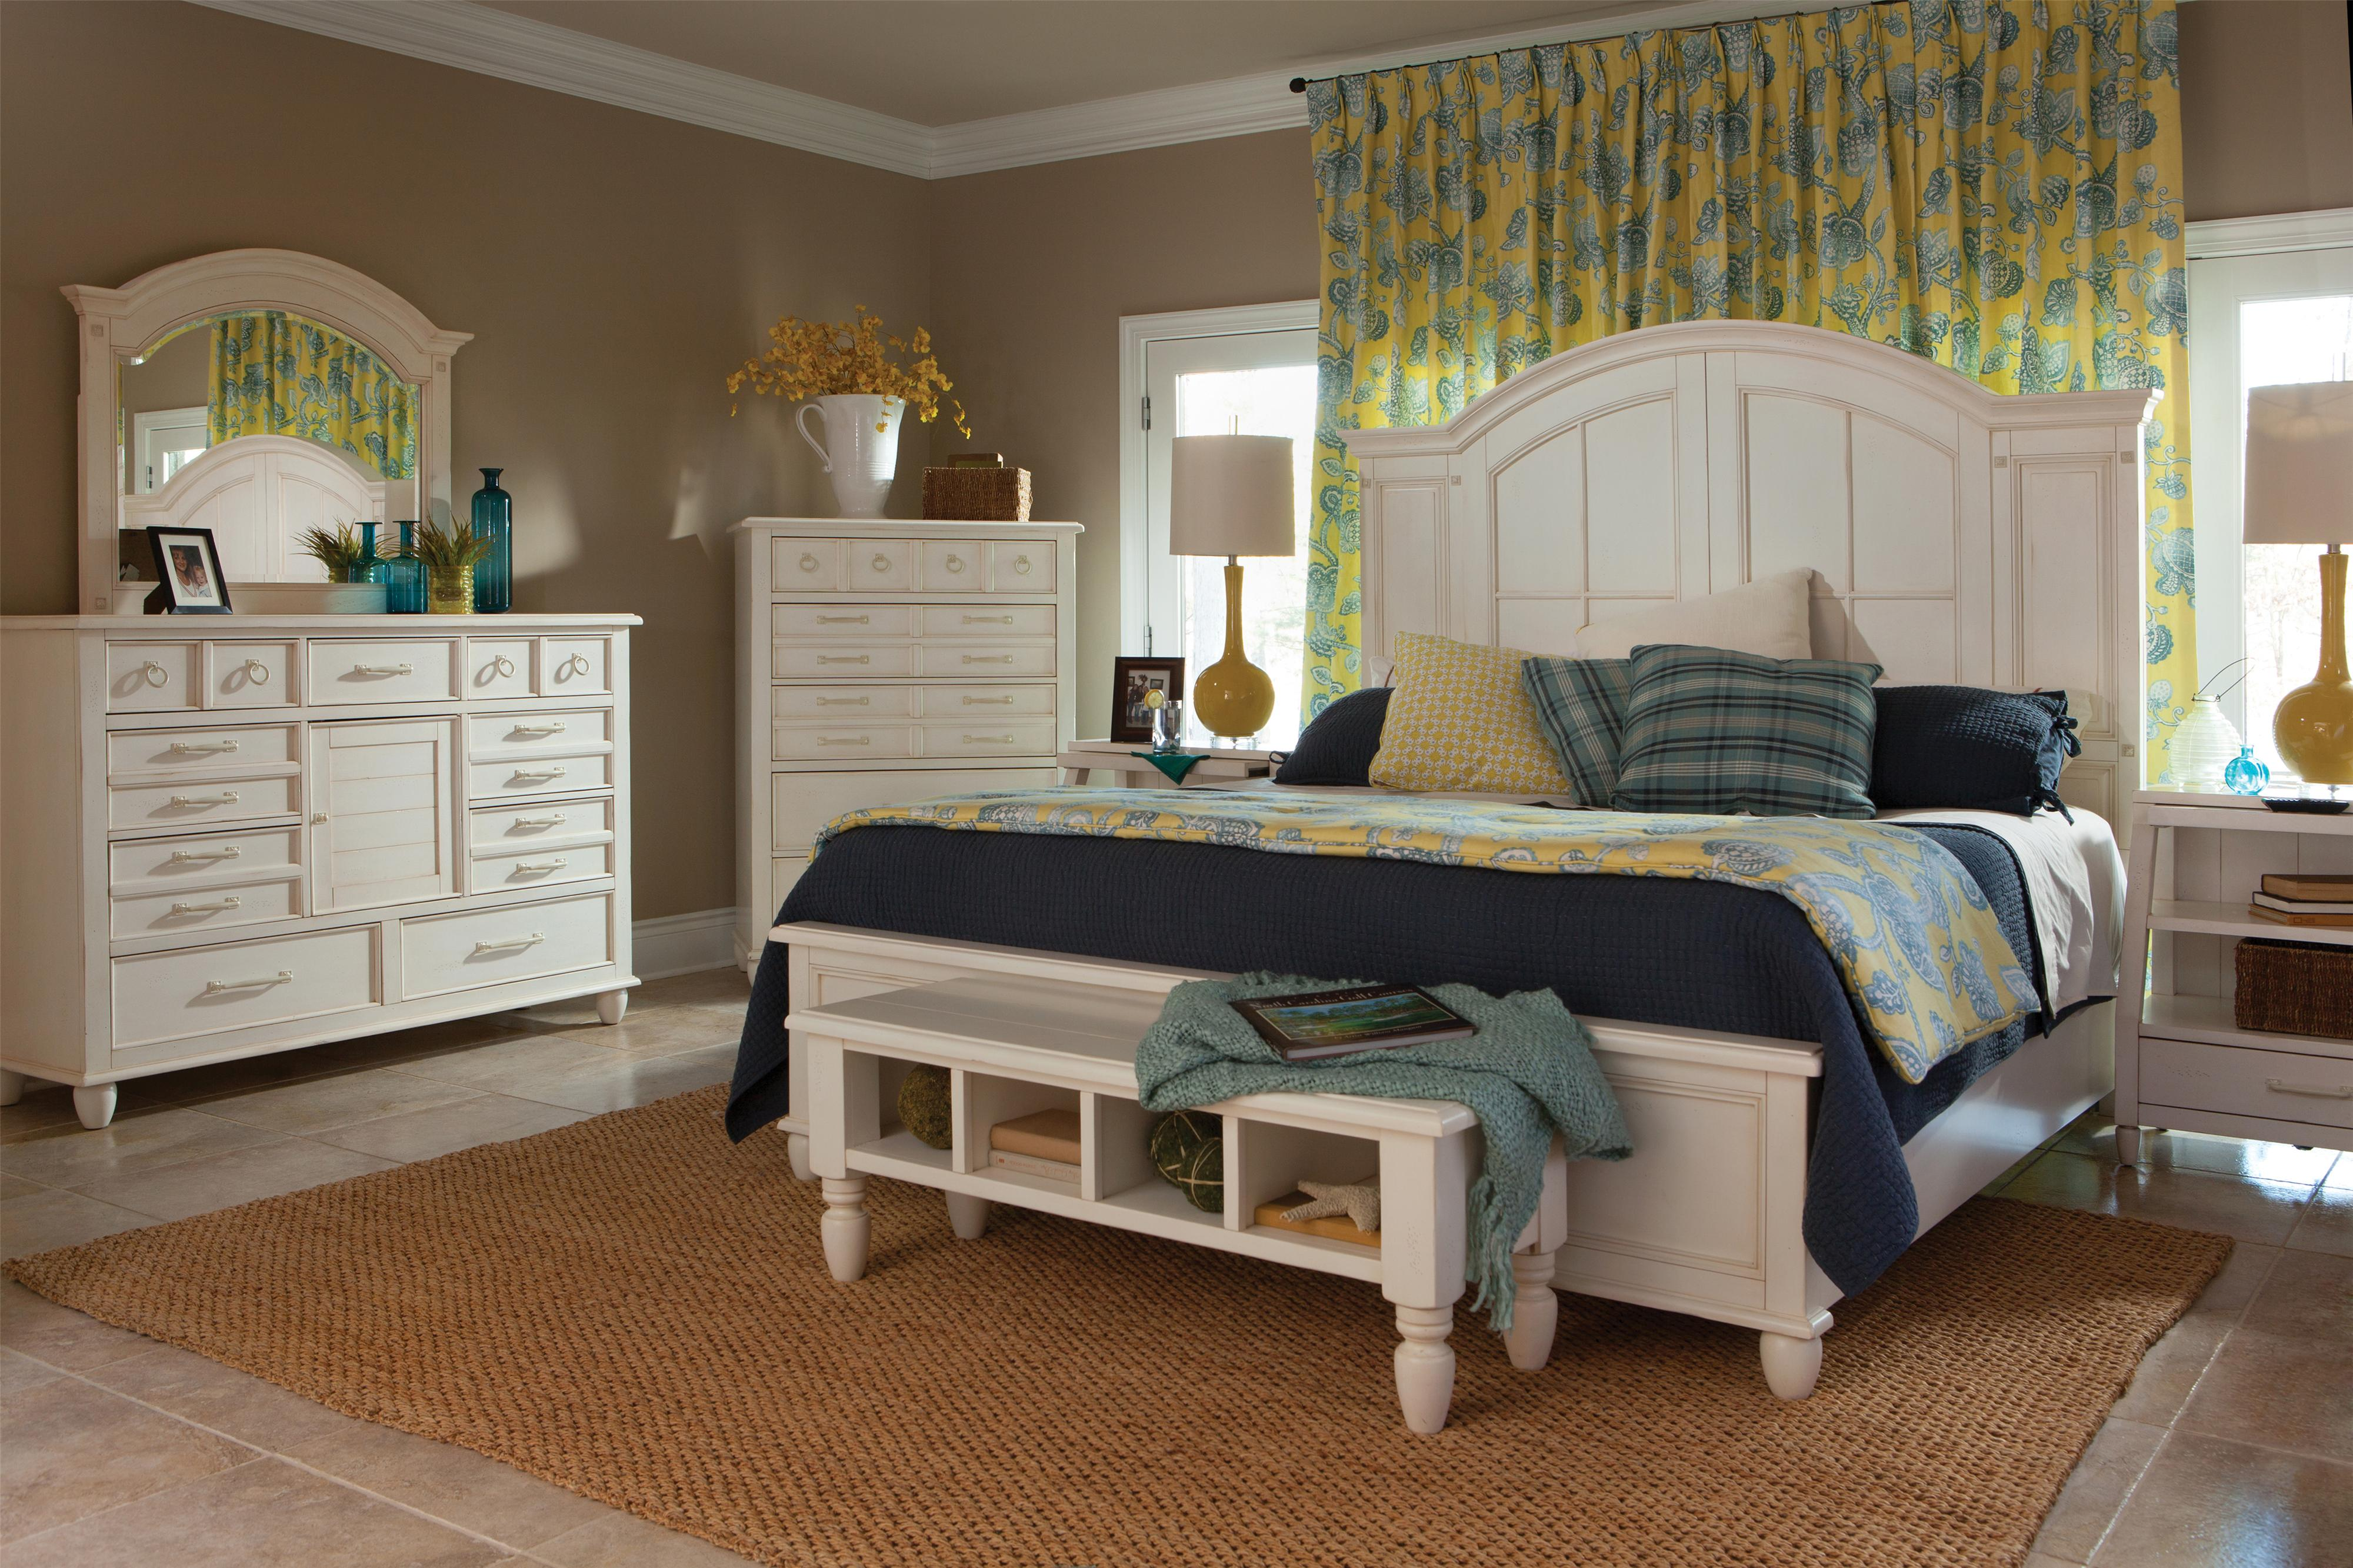 Carolina Preserves by Klaussner Sea Breeze Queen Bedroom Group - Item Number: 424 Q Bedroom Group 3